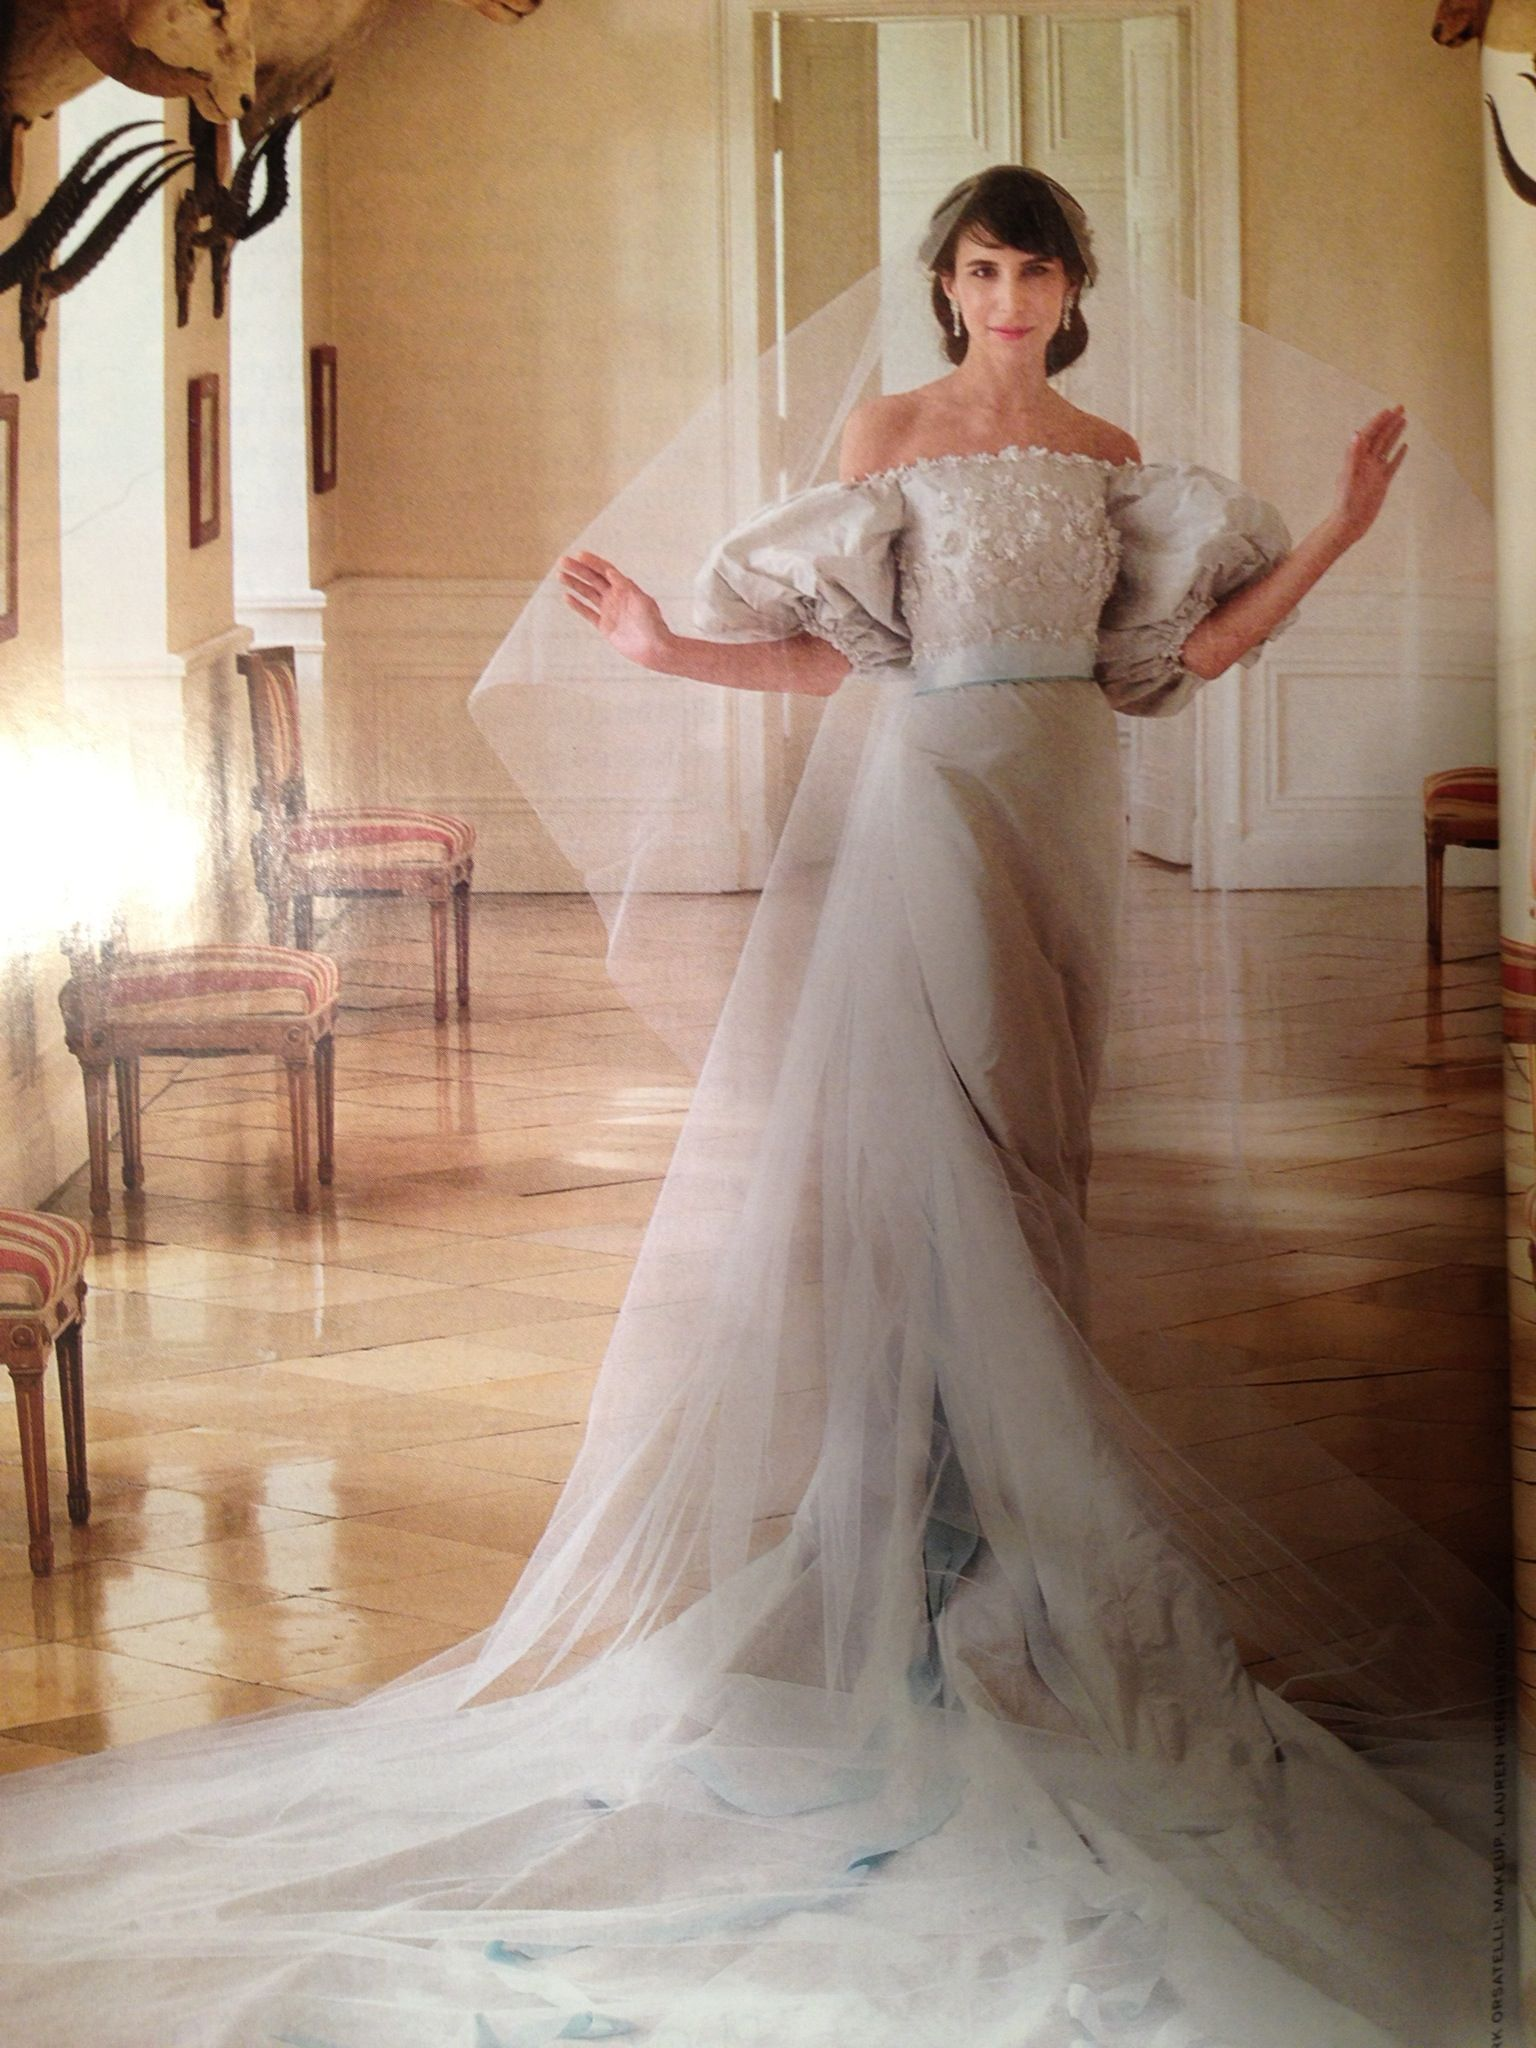 Caroline Sieber In Her Custom Chanel Wedding Gown Inspired By The